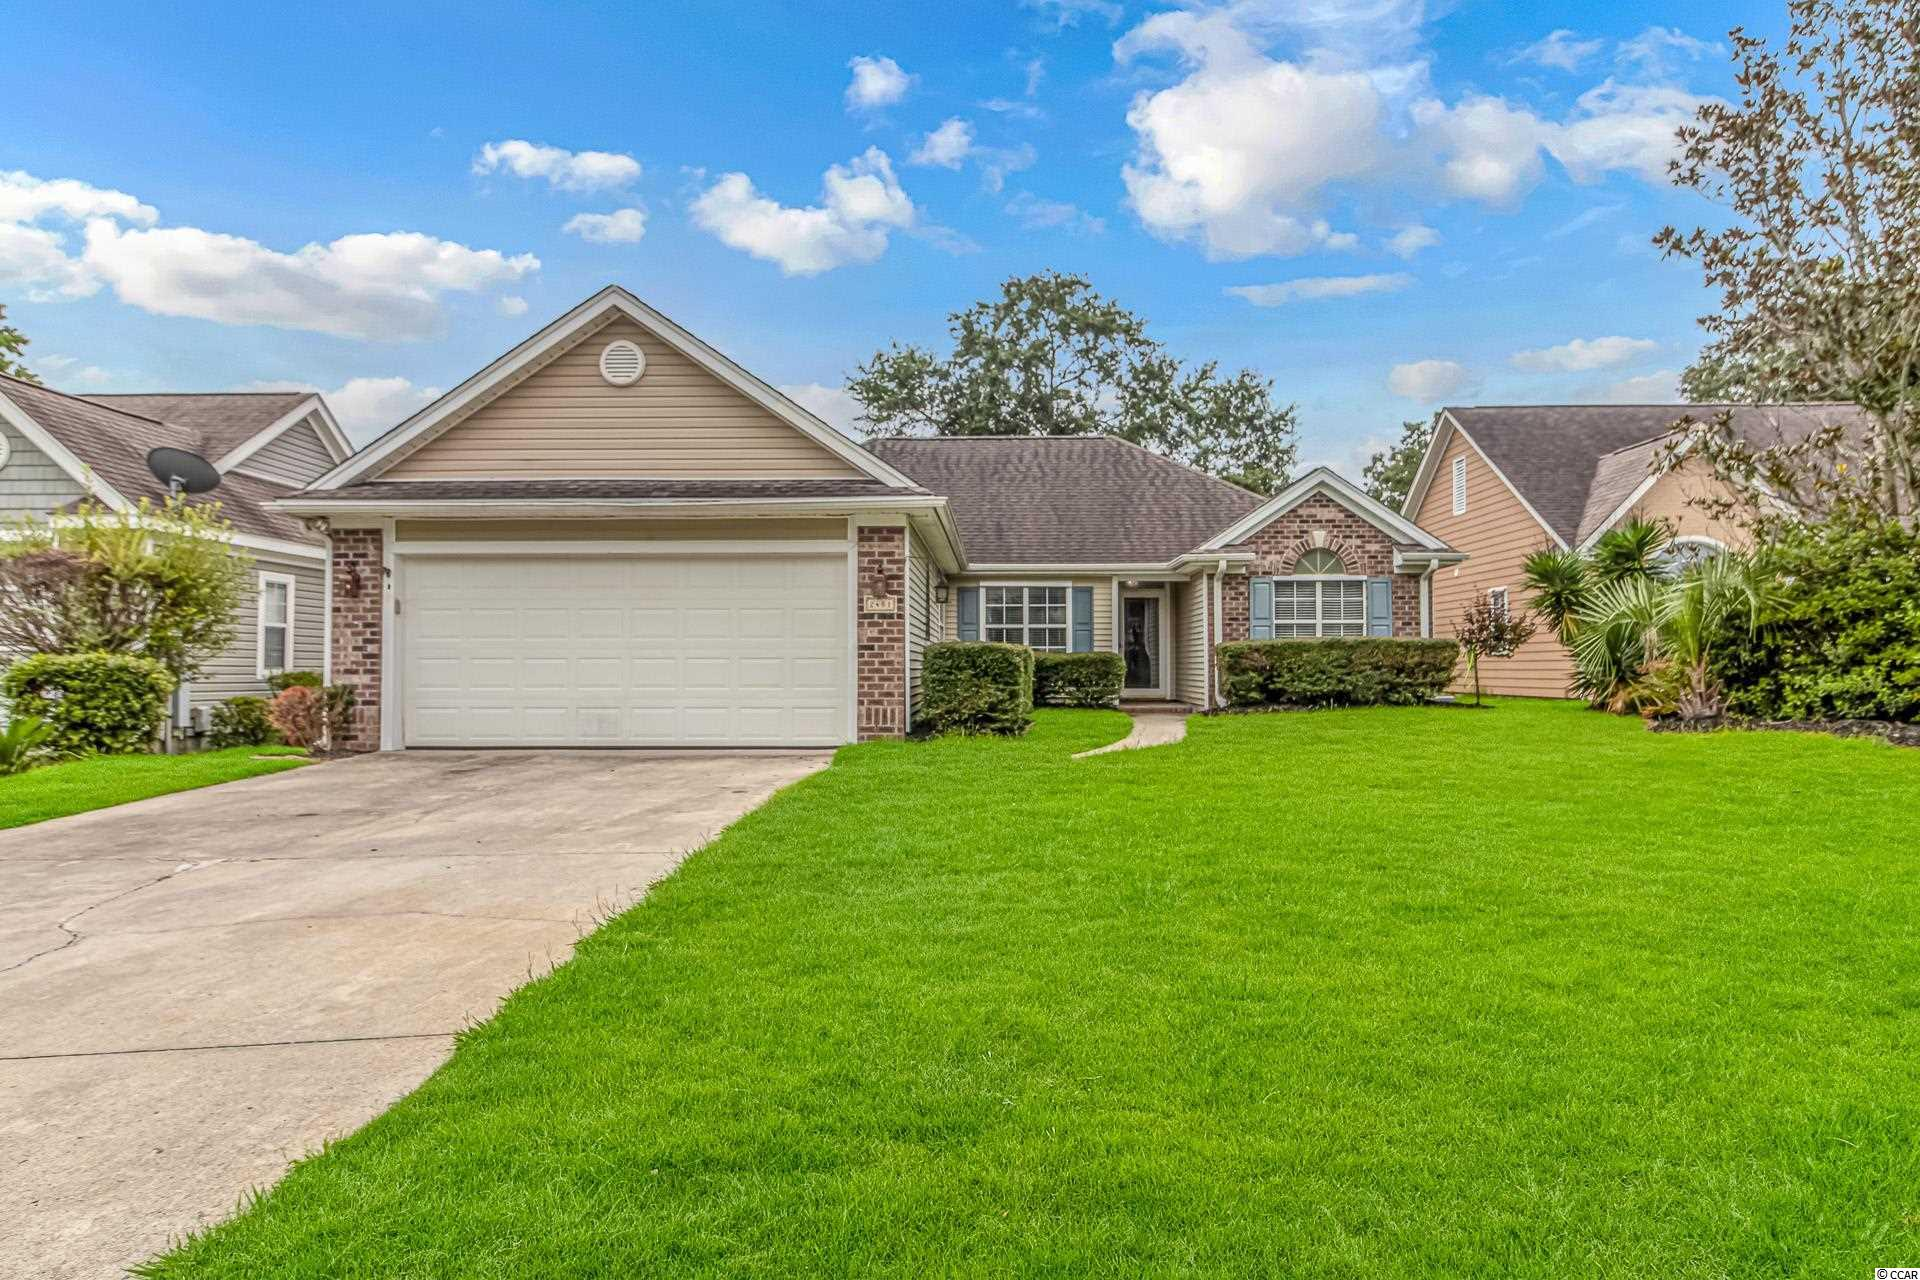 Welcome to the beautiful neighborhood of Heather Lakes. This mature, established community offers a club house, community pool, play ground and plenty of nature trails and ponds. When approaching the home, you will notice the Storm Door located on the front entrance. This feature is perfect for heavy storms, keeping the outside from coming in on beautiful days and perfect for more natural light. When entering you are pleasantly surprised by the complete openness of the main living area, with architectural beams, columns and cut-outs creating a separation between the living room, formal dining area and Carolina Room. Tile throughout the whole main living area, allows for easy cleaning, and with fresh paint on the interior walls creates this open airy feel. Right off the living room is large Carolina Room, with beautiful panoramic windows wrapping the whole space. The Kitchen is located to left, equipped with LVP Hard wood flooring, eat in dining area, breakfast bar, plenty of storage, all white appliances, white cabinetry, large pantry, access to the two car garage and the full sized laundry room. The second doorway off the living area to the left is the master bedroom/owners suite. This room features a built-in headboard, with lamps that turn on with just a touch. A master bath with garden tub, double sinks and a separate stand up shower, plus a huge master closet. All LVP wood flooring throughout the master. To the right of the home is the spare/guest bedrooms both with large double windows, ceiling fans, closets, and LVP wood flooring. In between the bedrooms is the second full bathroom with tub/shower combo and tile flooring for easy cleaning. The backyard accessible through the Carolina Room, has a massive deck and large fenced in yard. This home does feature a new smart home security system that will convey with the property. Schedule your private showing today!